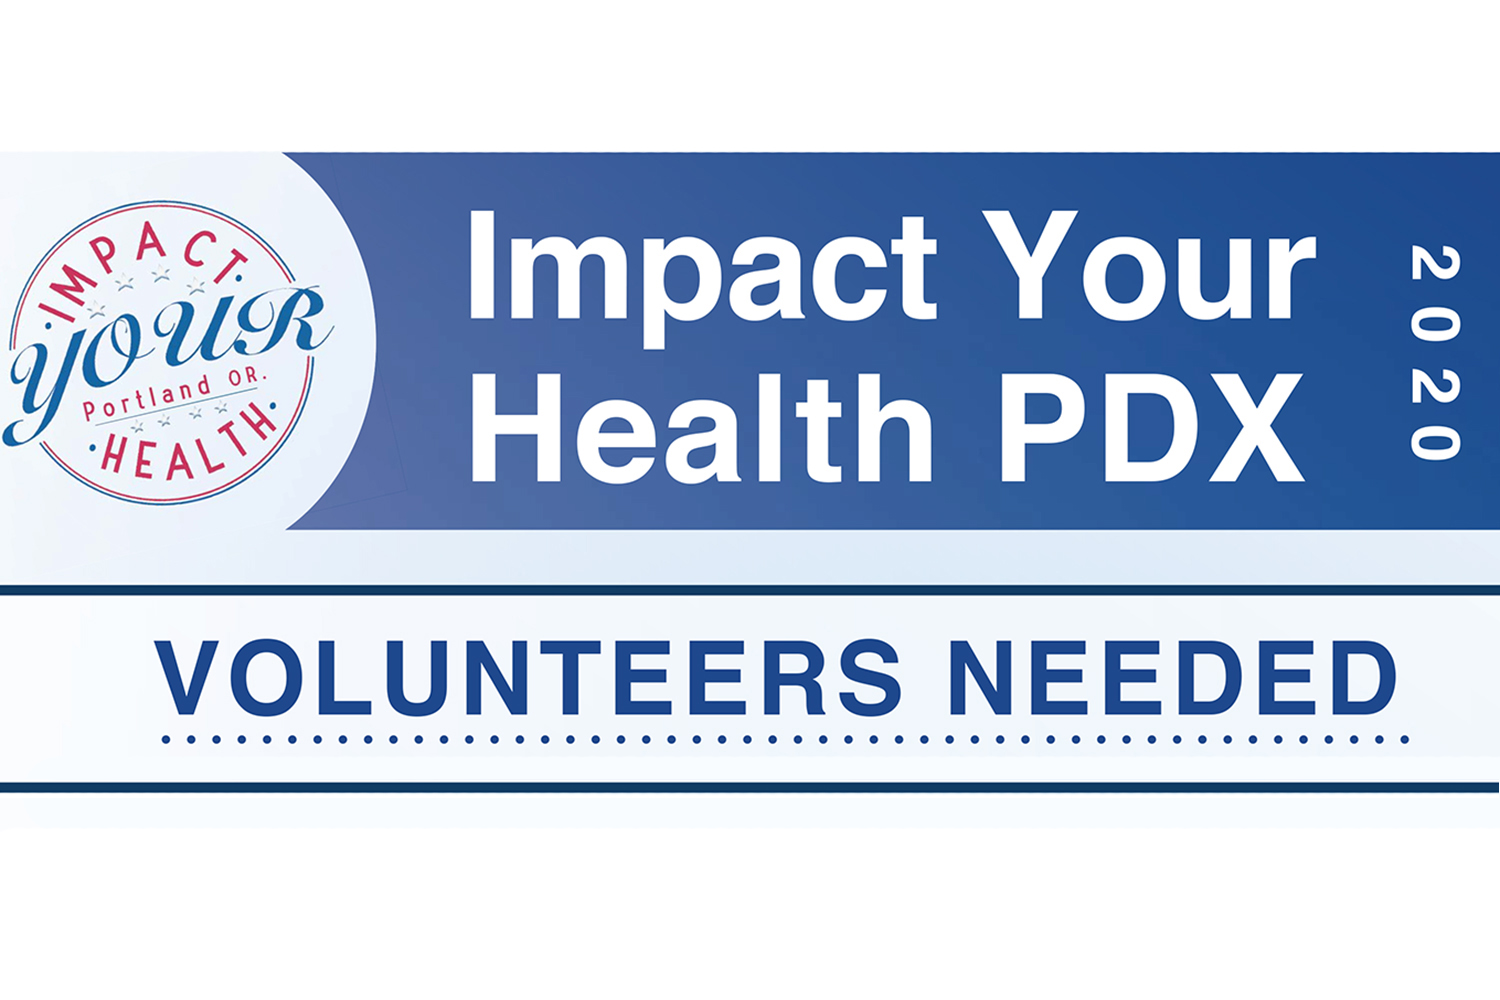 A Message from the Impact Your Health PDX Team